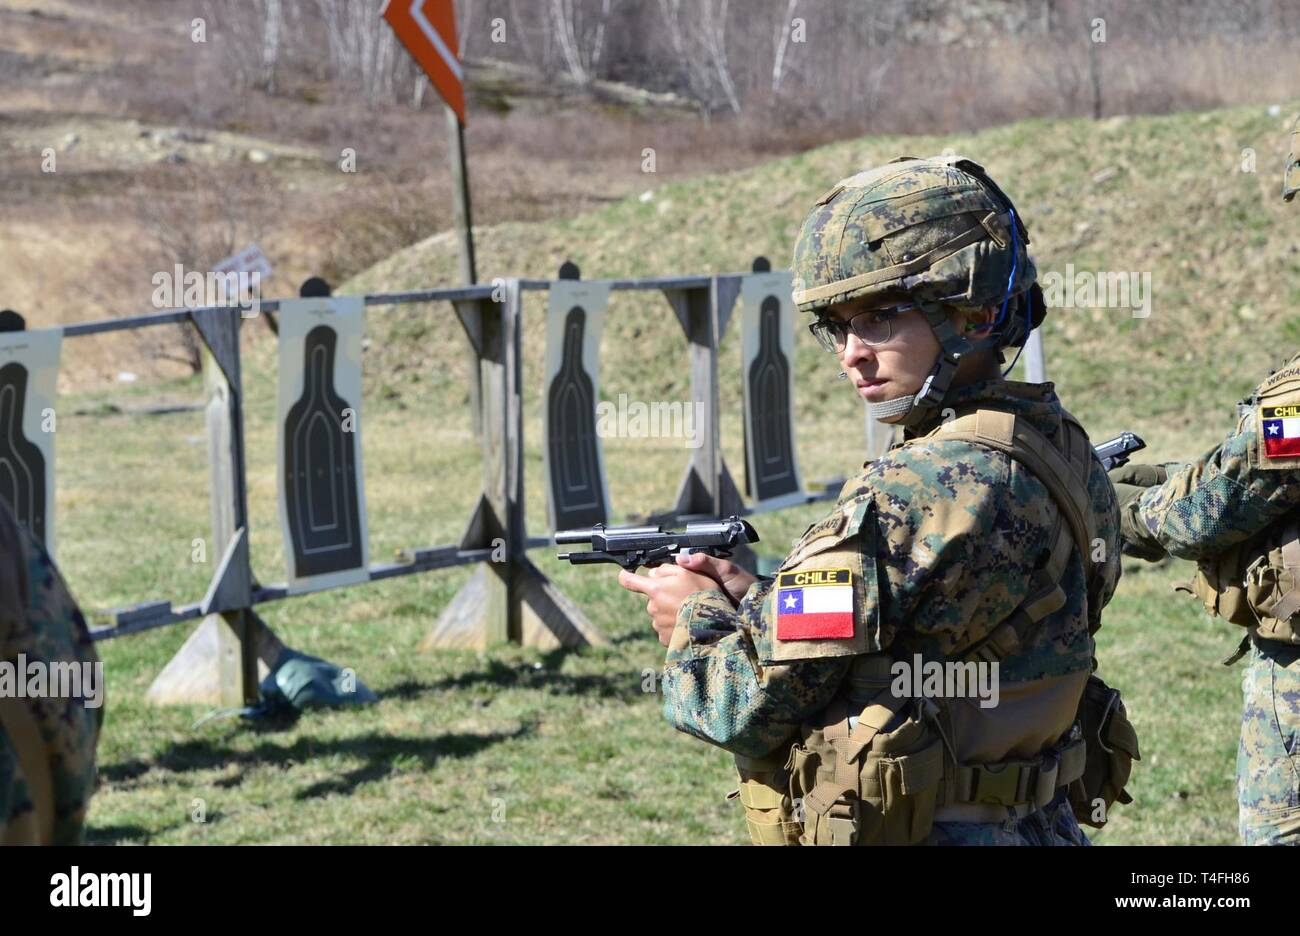 A Chilean cadet from the Bernardo O'Higgins Military School, Chile, takes part in an M9 pistol range in preparation for the 51st Sandhurst Military Skills Competition in West Point, New York, April 12-13. Sandhurst, a premier international military academy competition which began in 1967, is a two-day, approximately 30-mile course filled with individual and squad-based events designed to promote military excellence of future leaders across the world. This year, 49 teams from more than a dozen countries will participate in the competition, with two first-time teams competing from Denmark and Gr Stock Photo